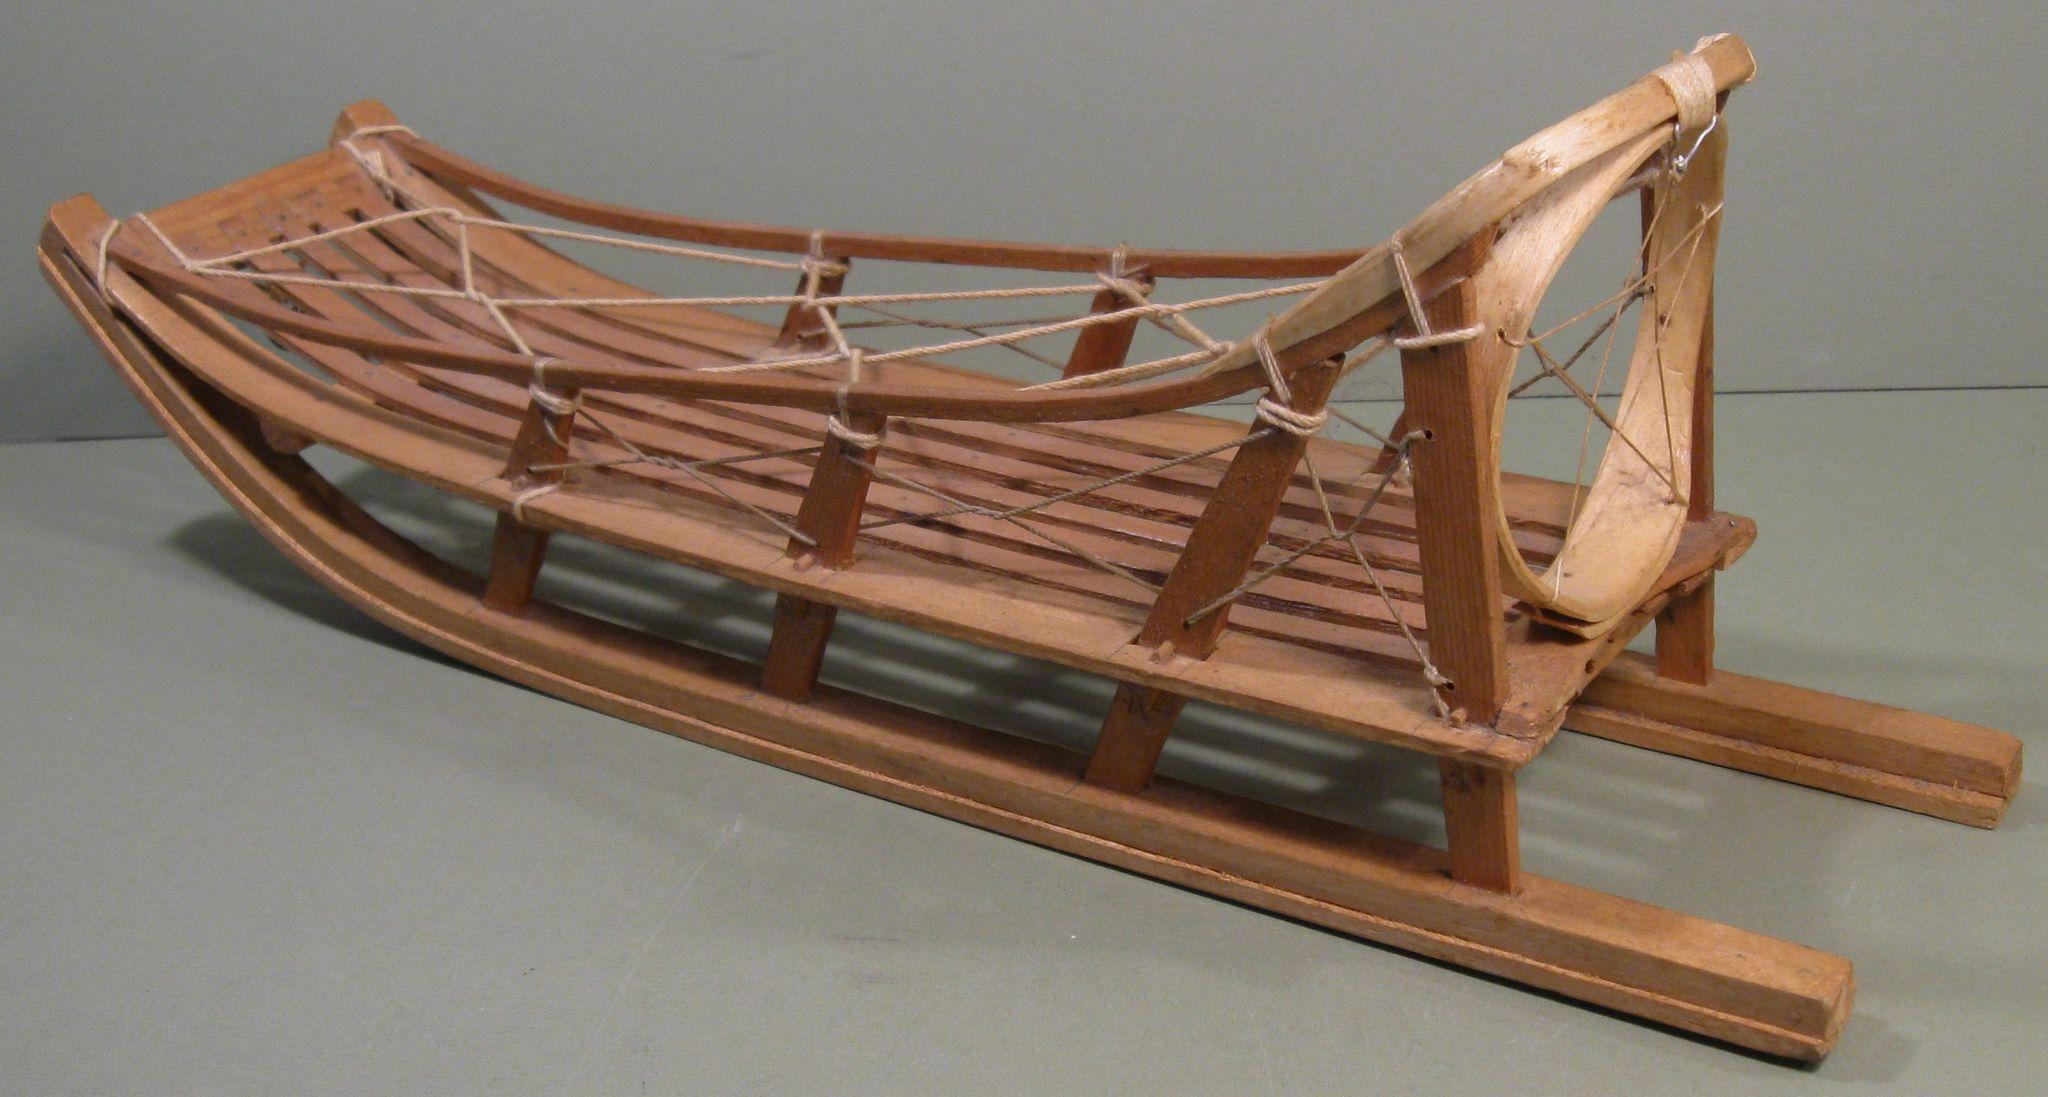 vintage eskimo sled model handmade 16 3 4 inches long from